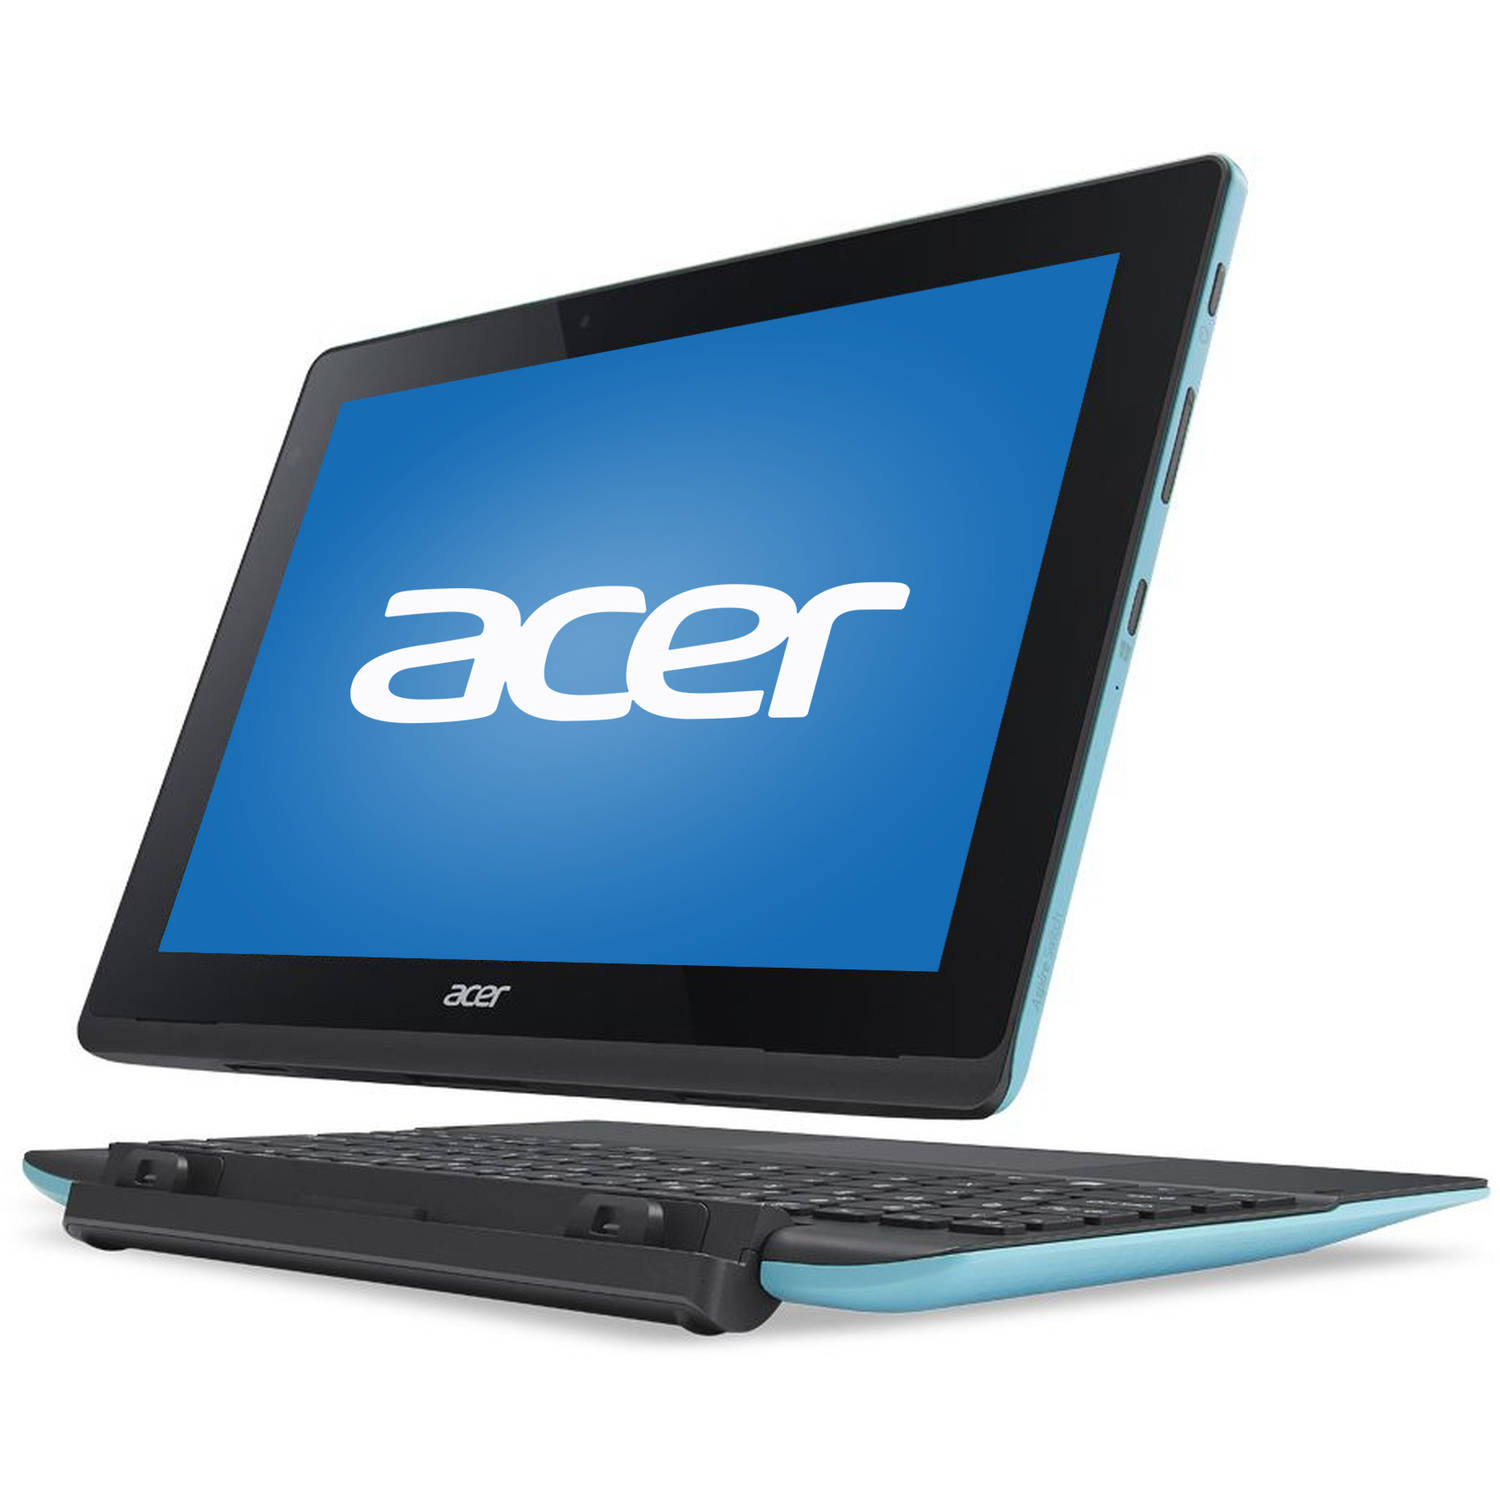 "Acer Blue 10.1"" Aspire SW3-016-17WG Laptop PC with Intel Atom x5-Z8300 Processor, 2GB Memory, touch screen, 64GB Flash Drive and Windows 10"